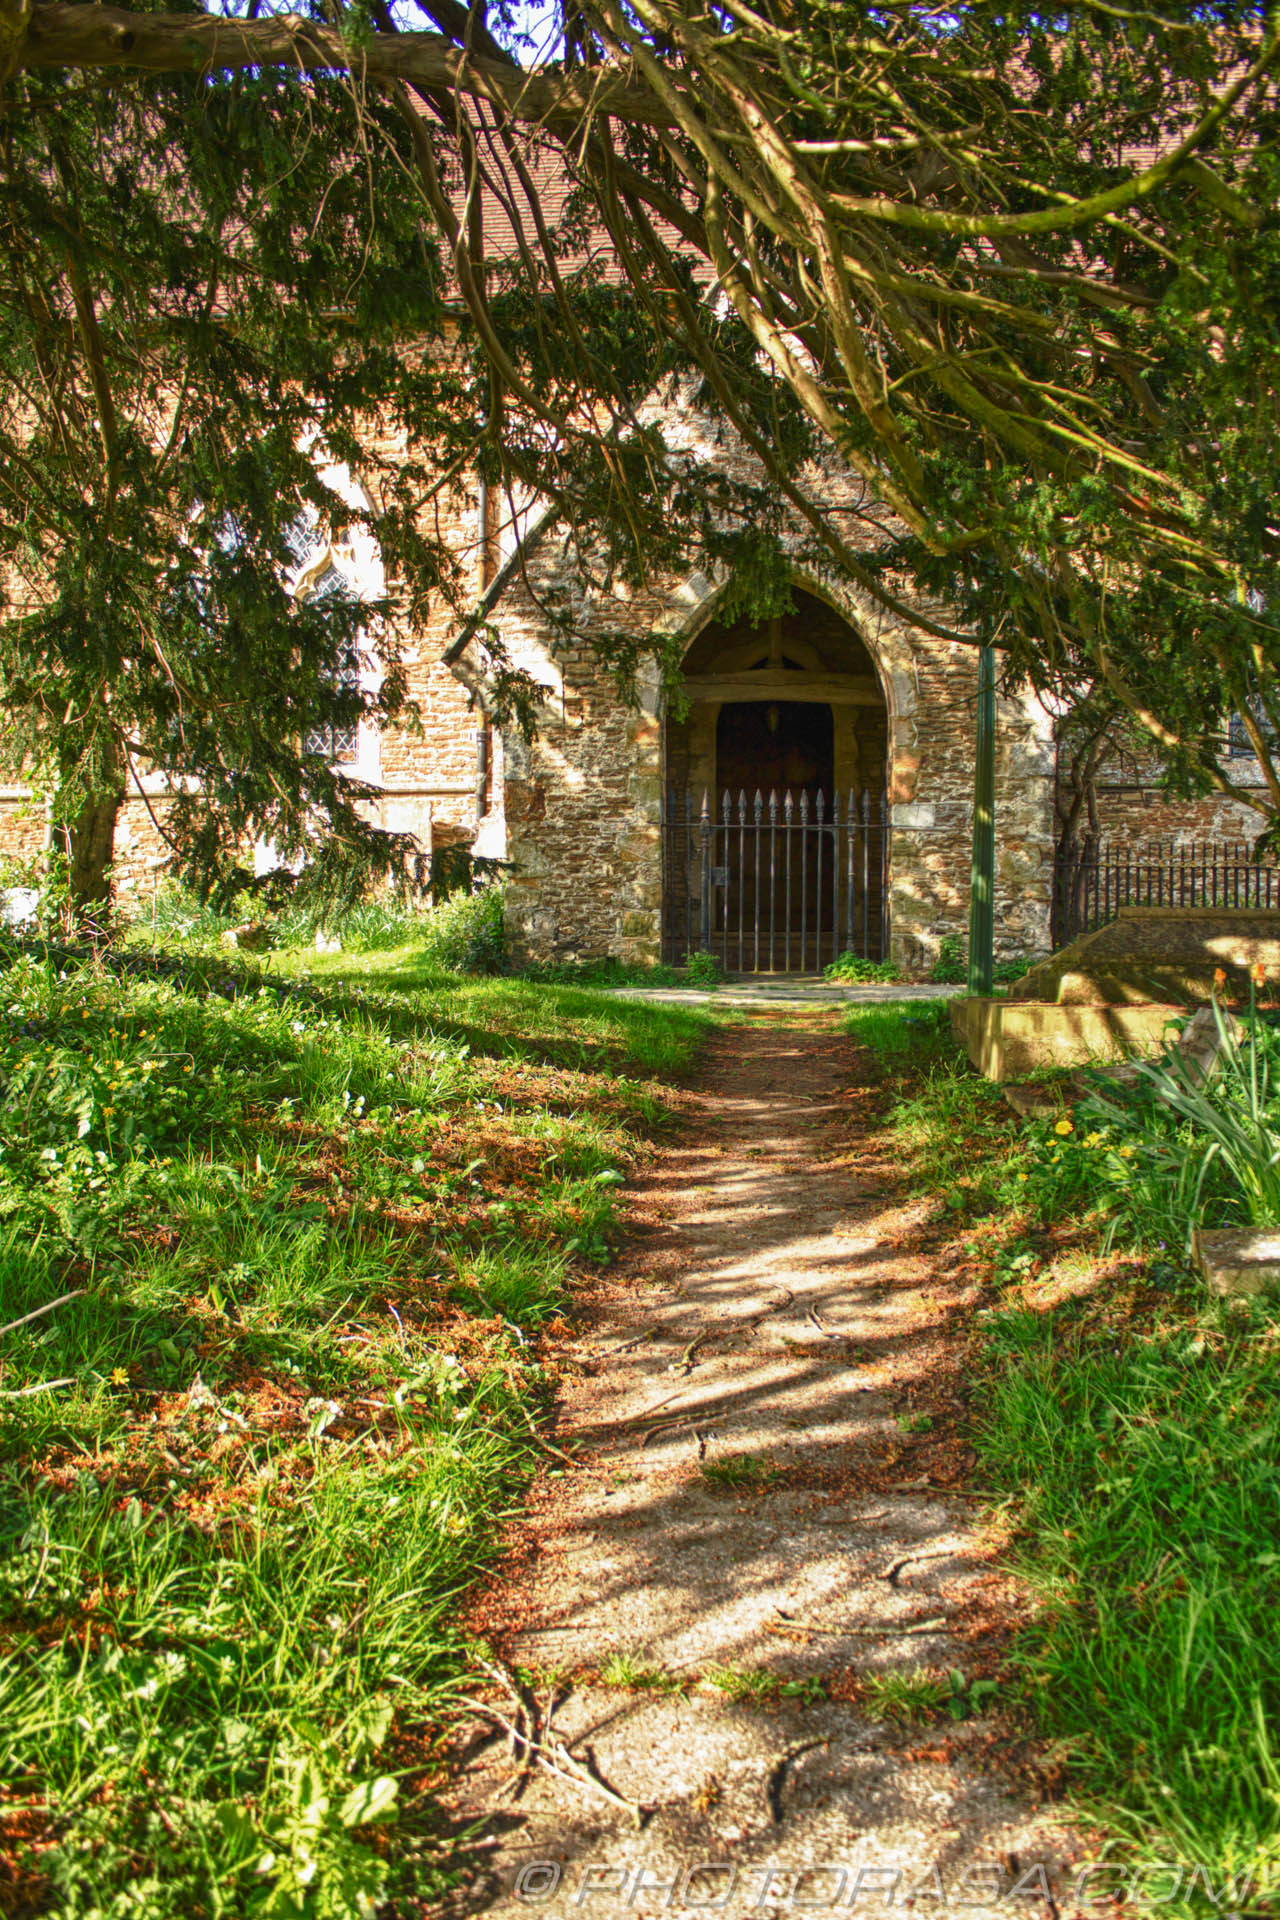 http://photorasa.com/saints-church-staplehurst-kent/path-to-the-church/